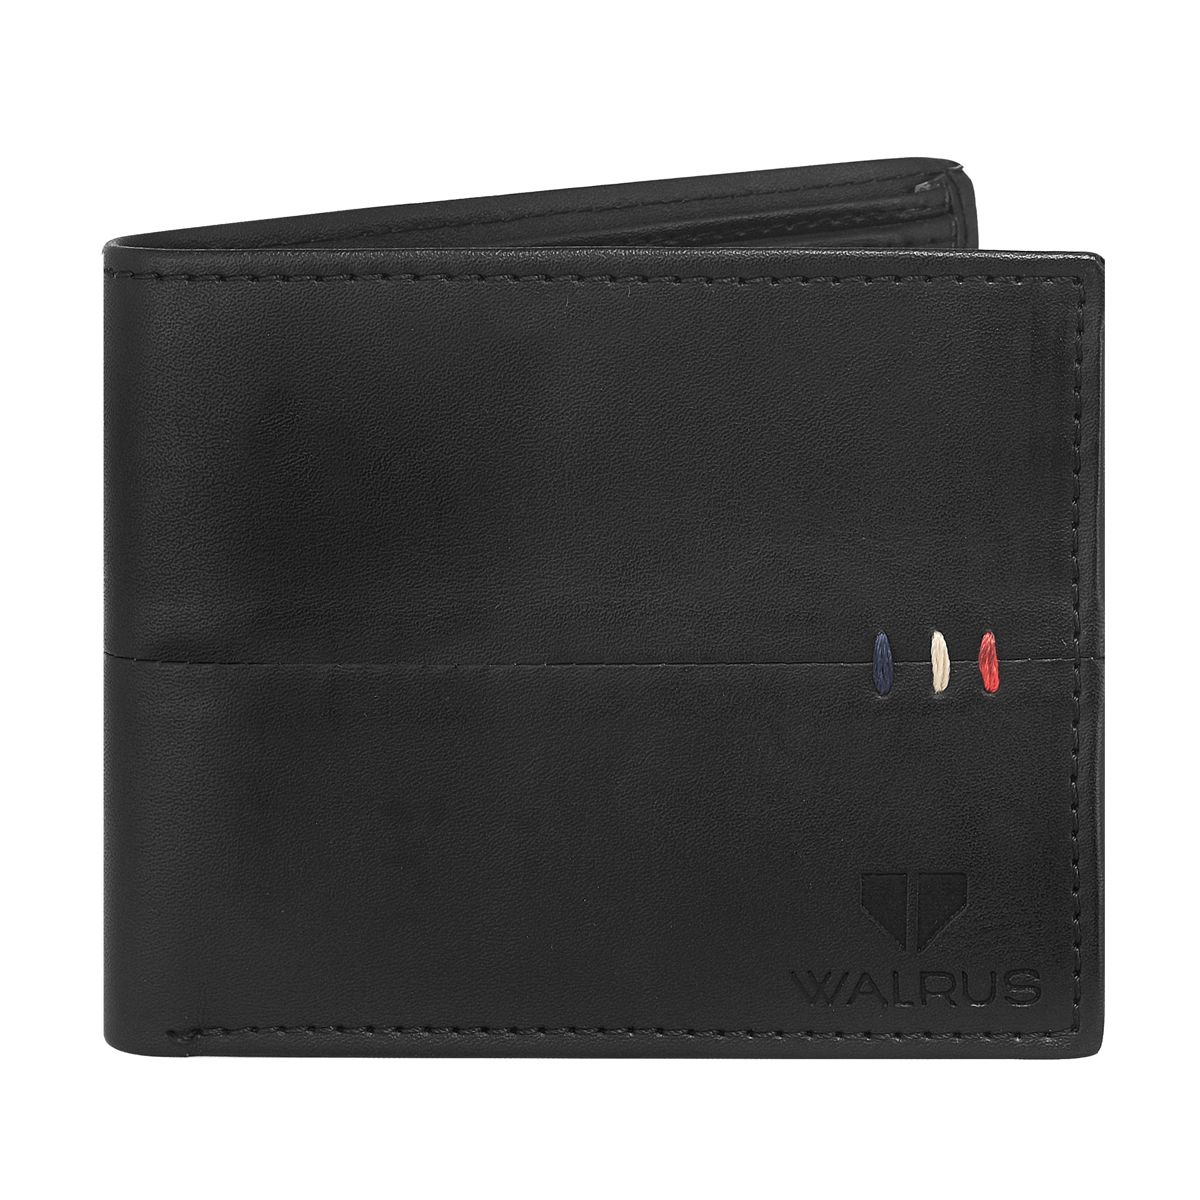 Walrus Daniel Black Color Men Leather Wallet- WW-DNL-02